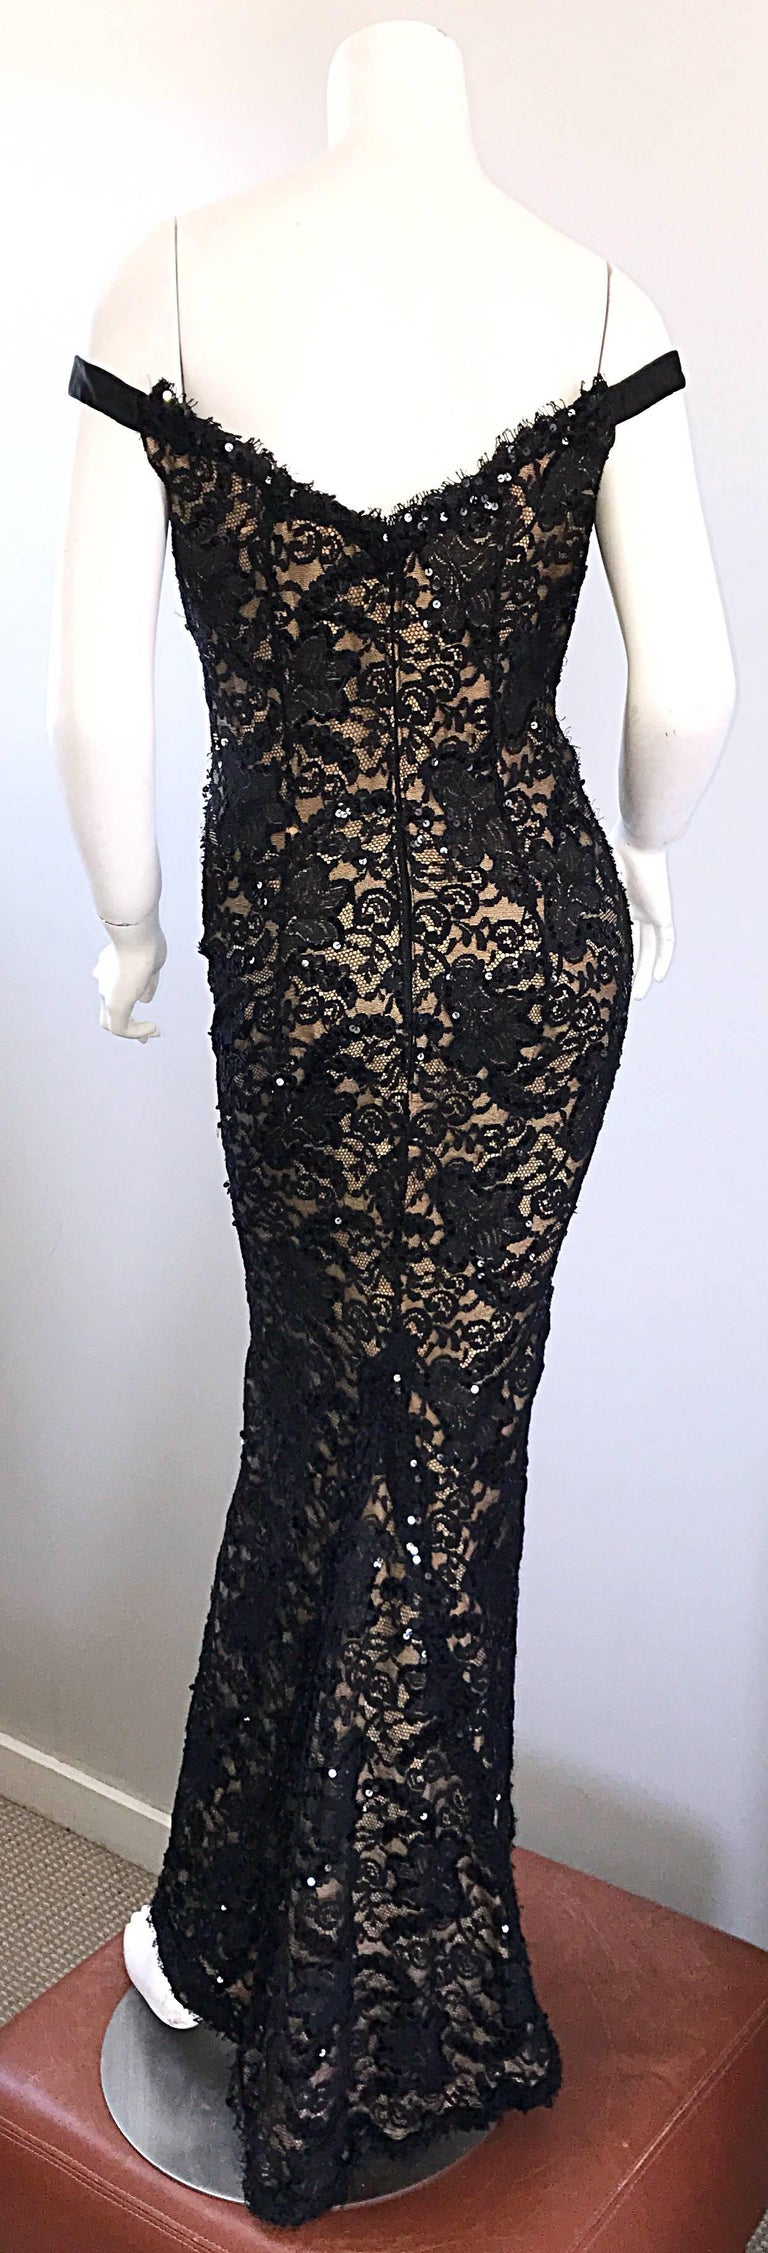 Vintage Bob Mackie Black Lace Sequin Size 8 1990s 90s Evening Off Shoulder Gown  For Sale 3